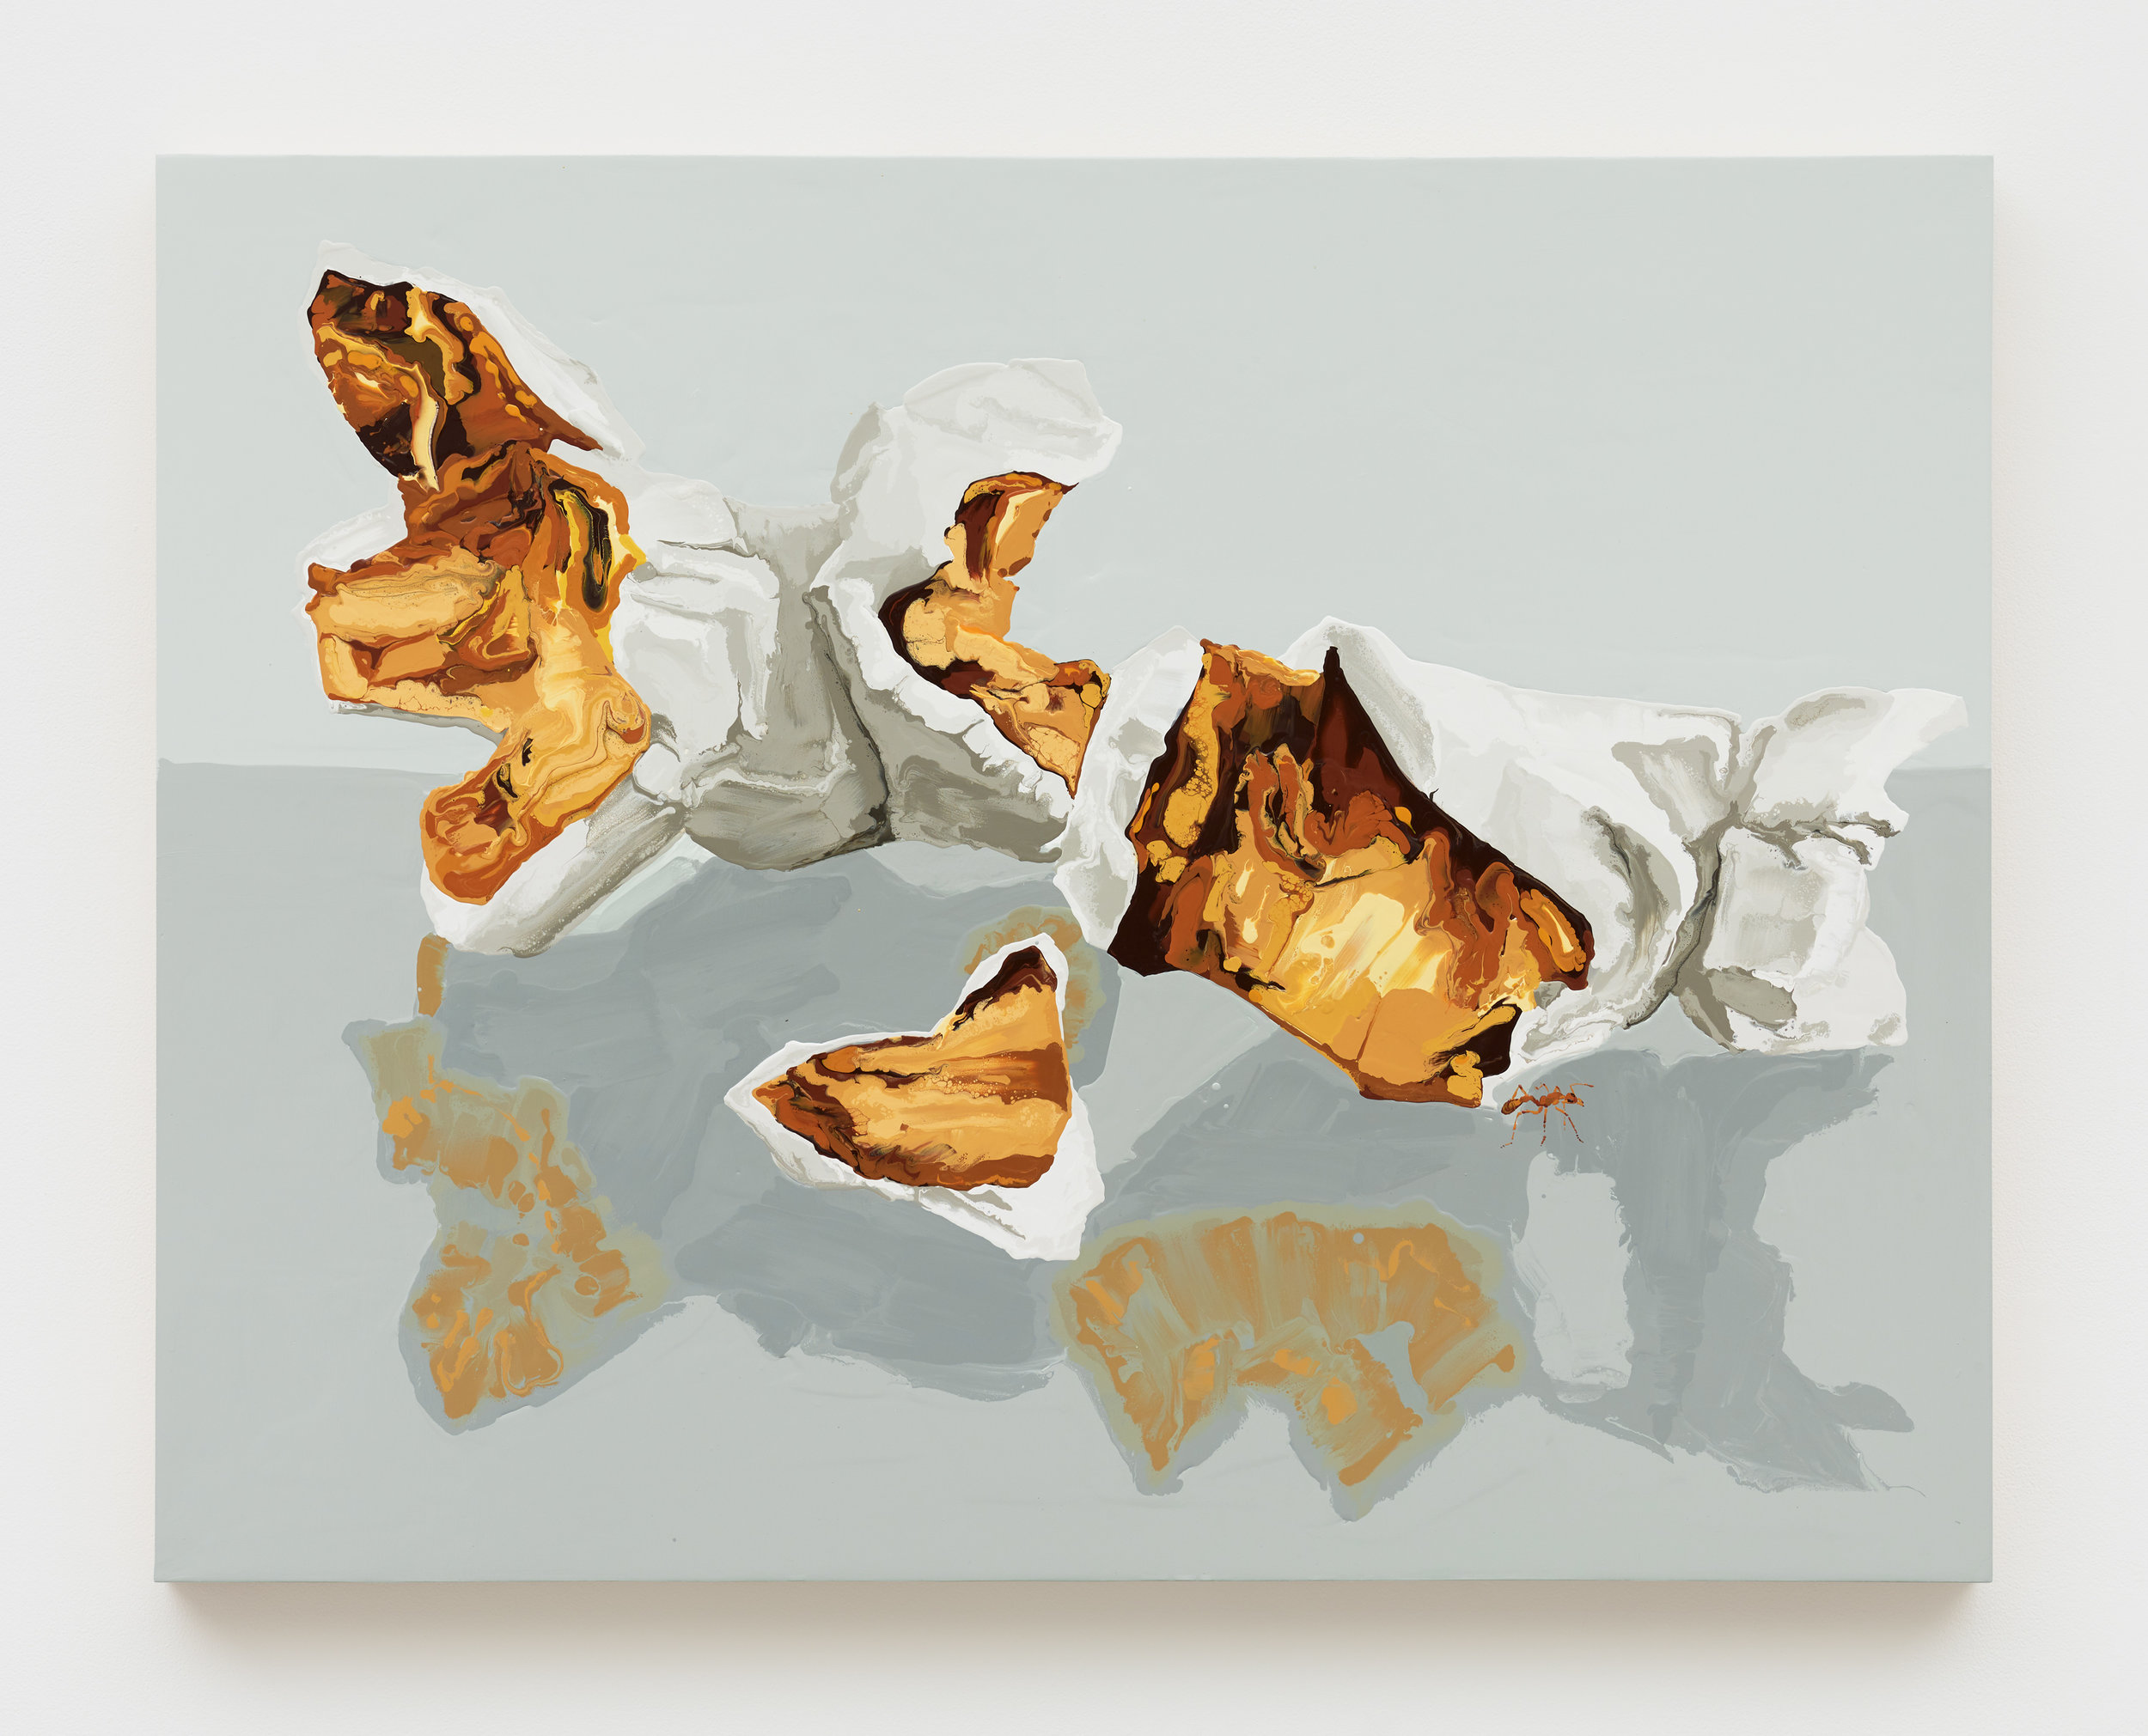 Kirsten Everberg, Red Formica adn Popcorn (Pae White, Double), 2019, Oil and enamel on wood panel, 36 x 24 inches